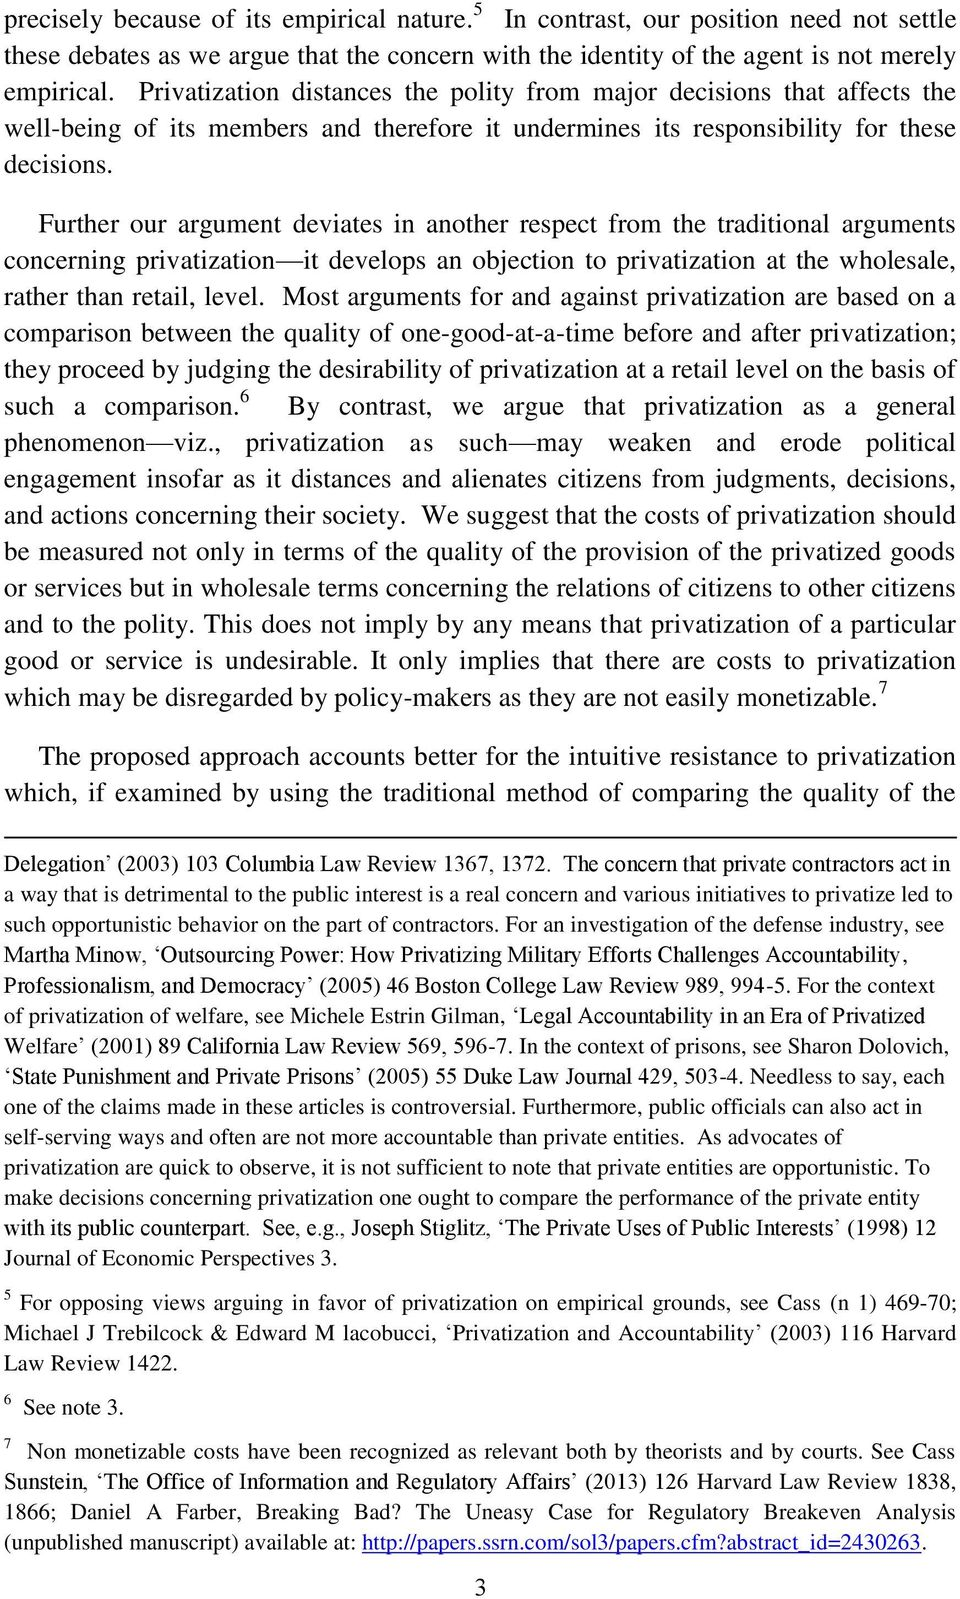 Further our argument deviates in another respect from the traditional arguments concerning privatization it develops an objection to privatization at the wholesale, rather than retail, level.